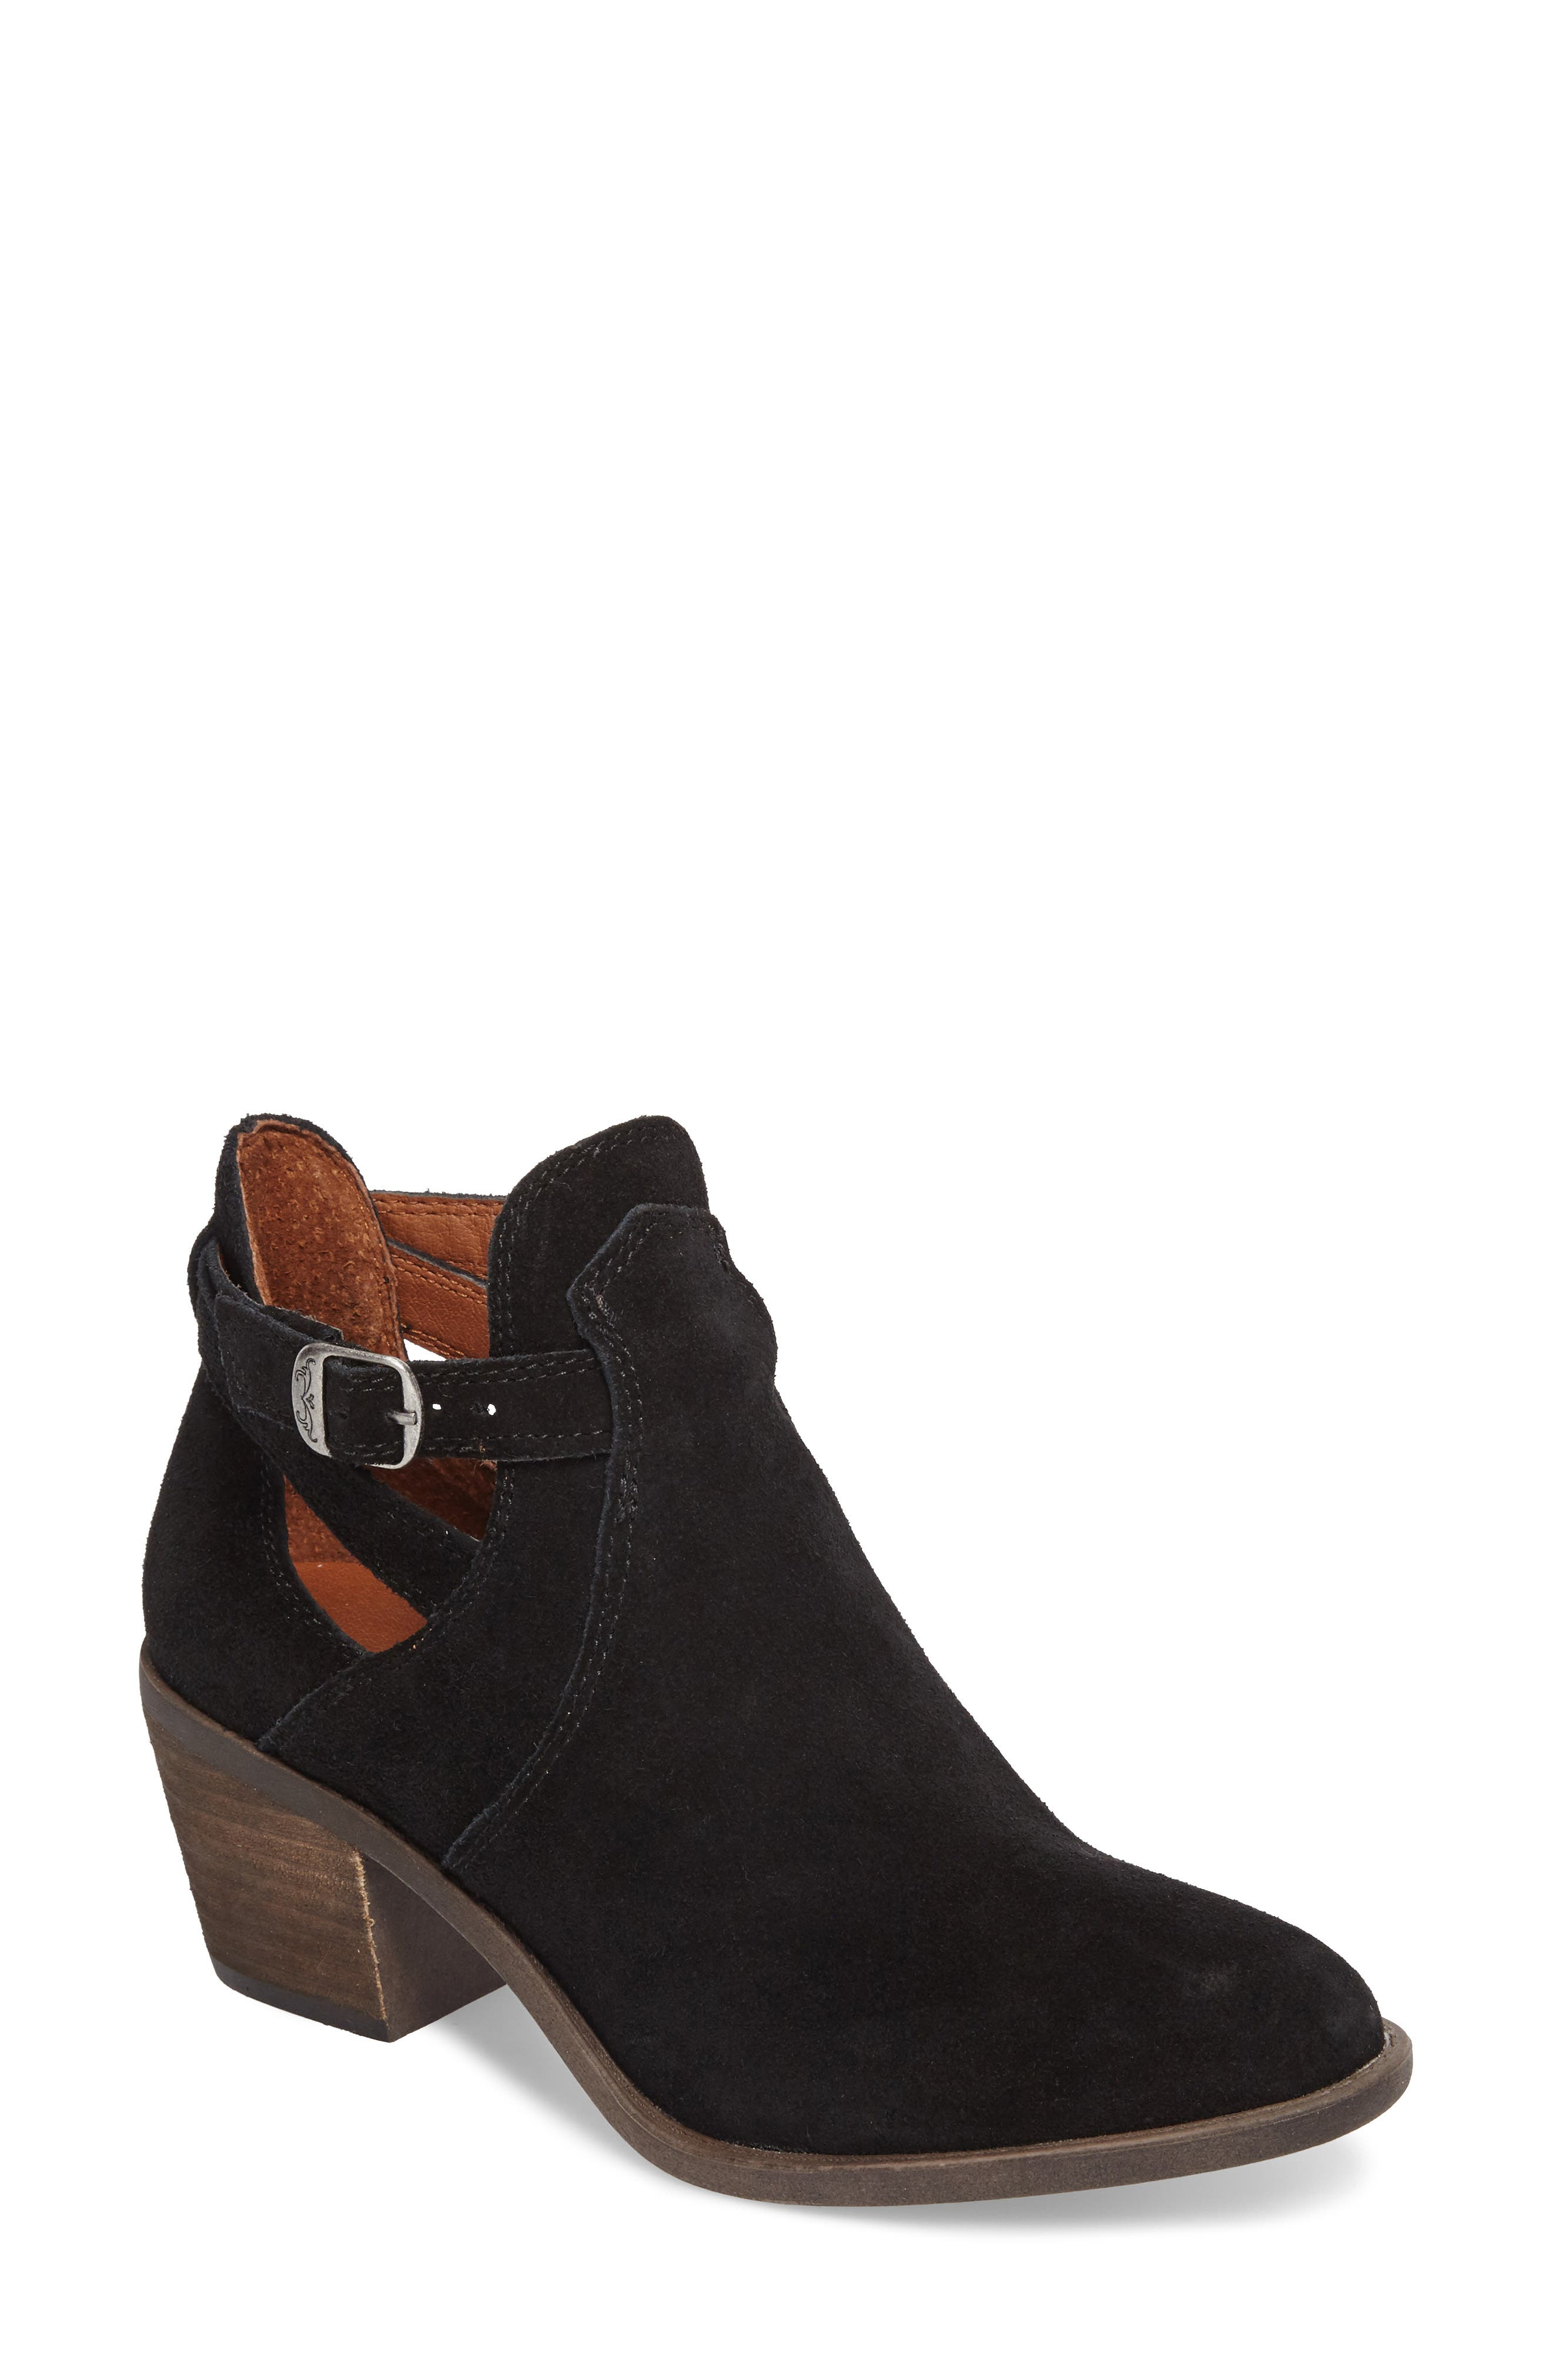 Nandita Cutout Bootie,                         Main,                         color, 001